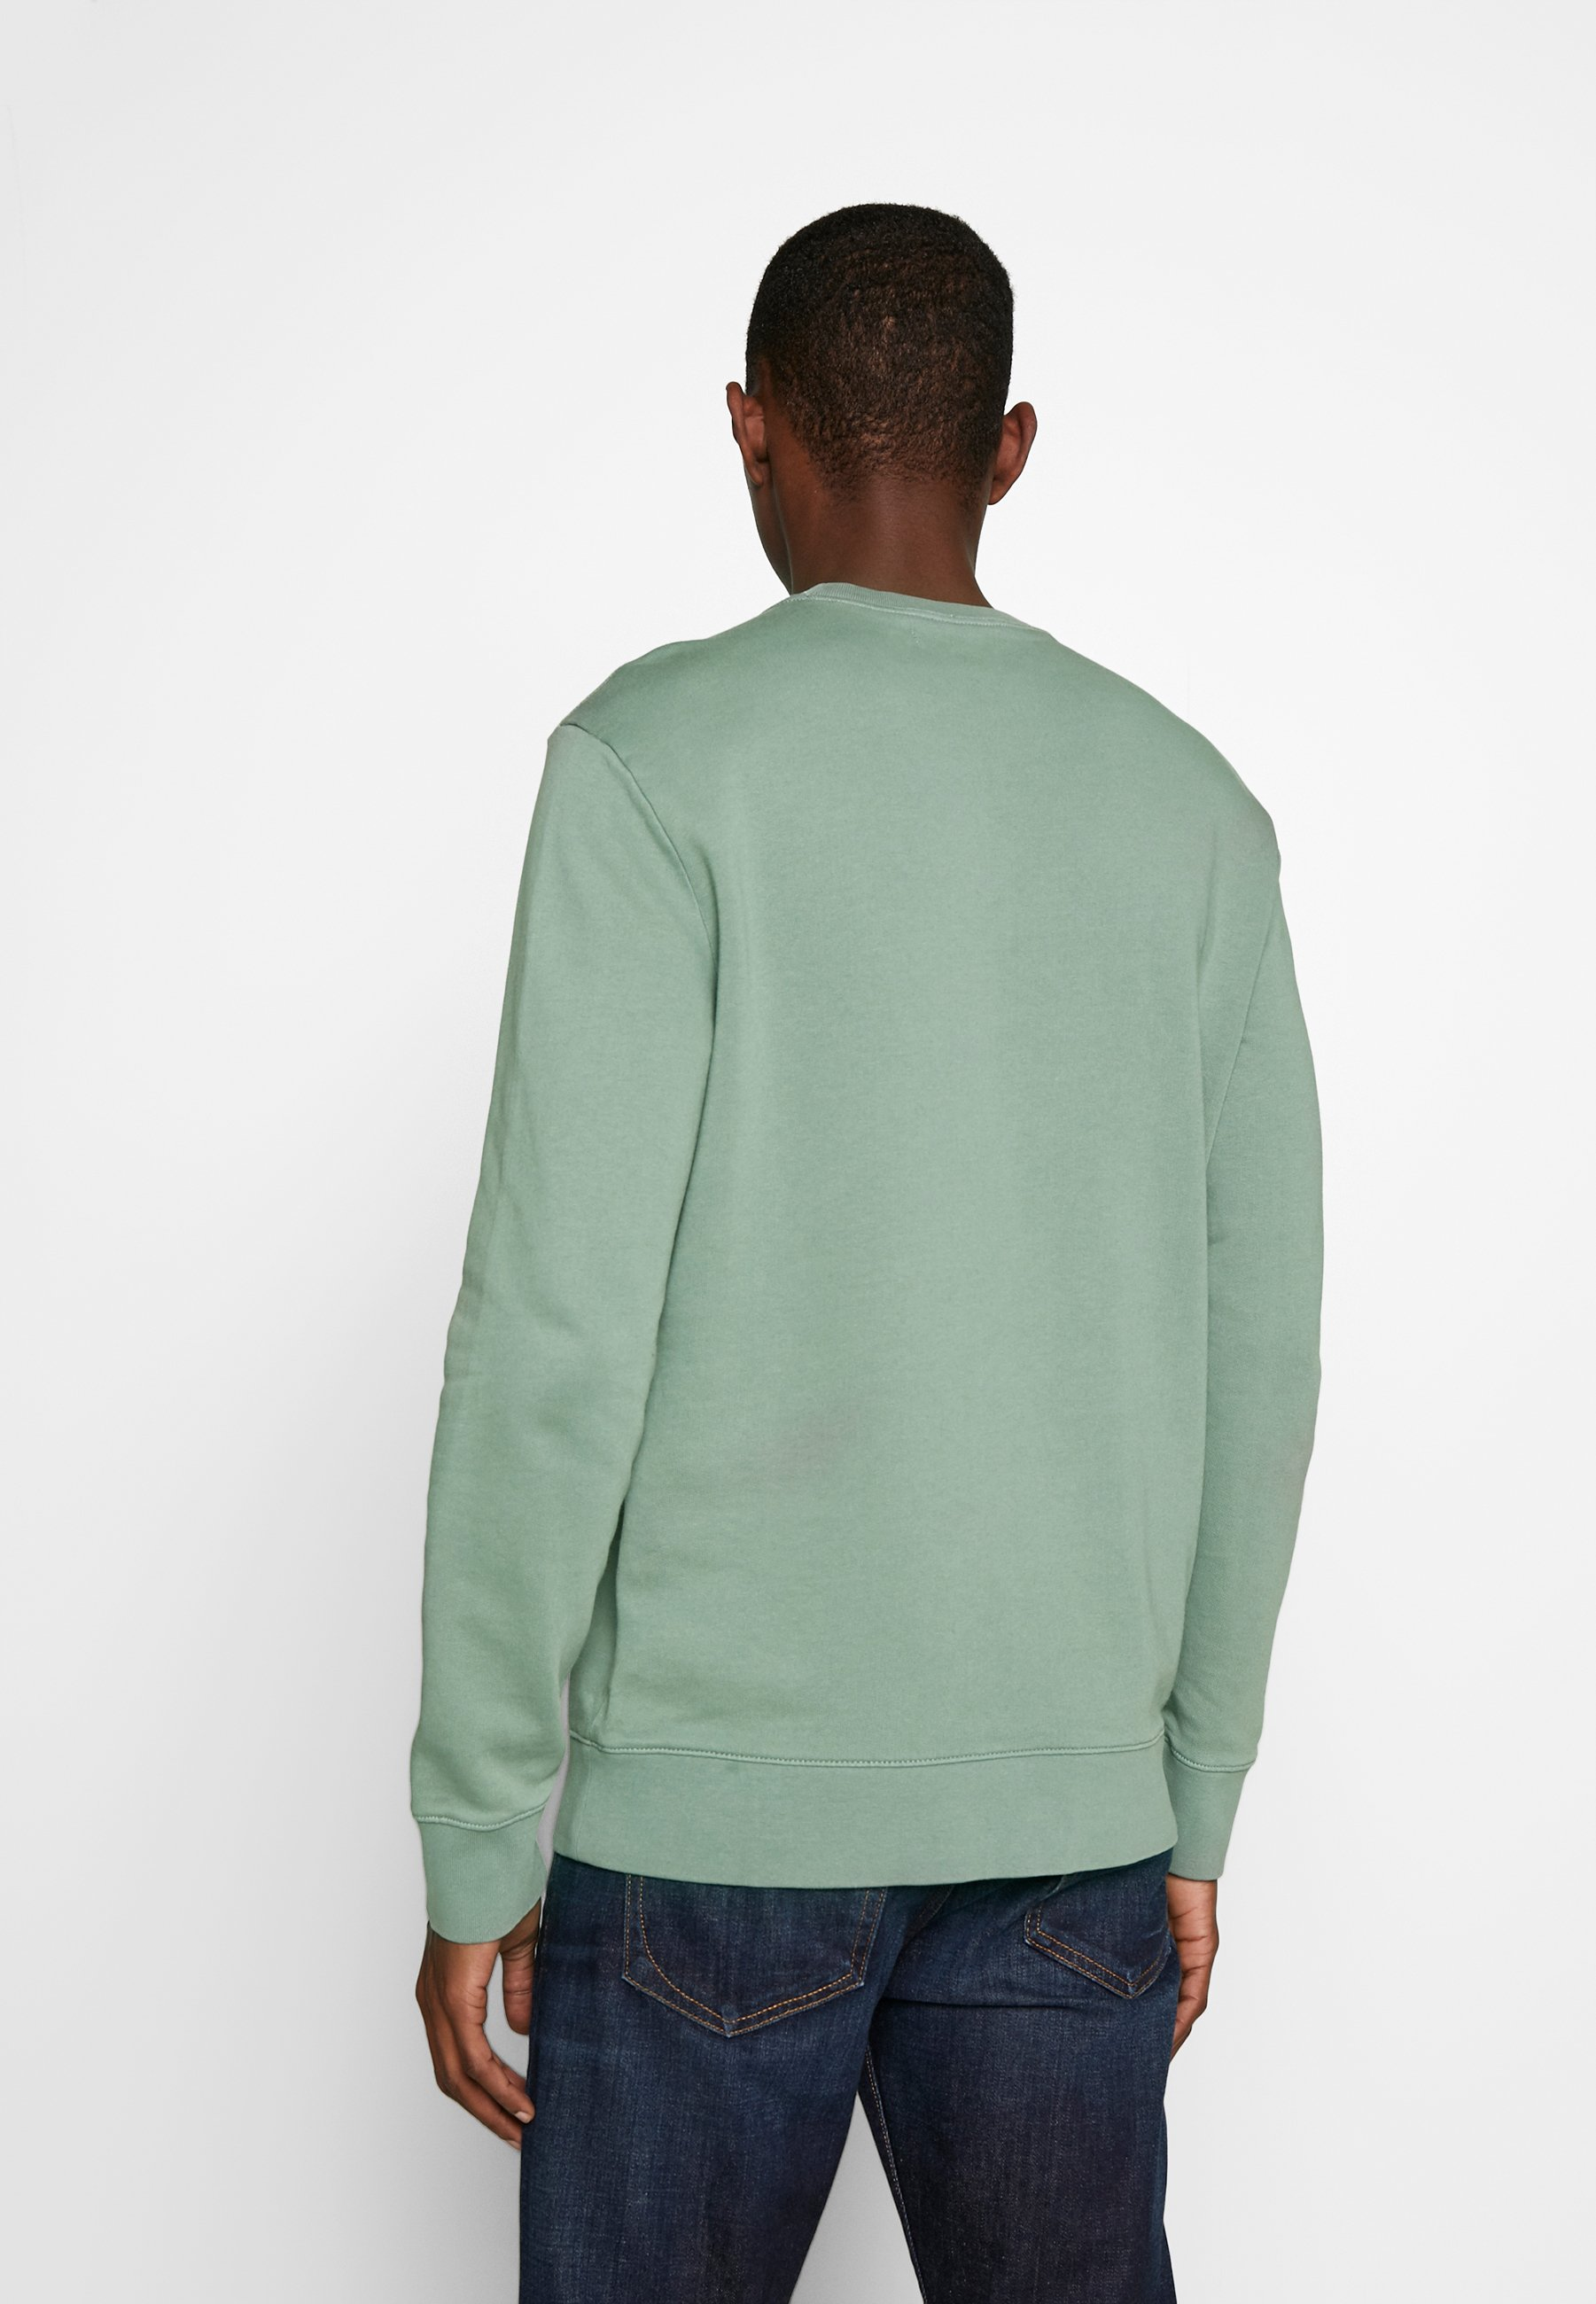 Club Monaco Sweatshirt - Glass Blue